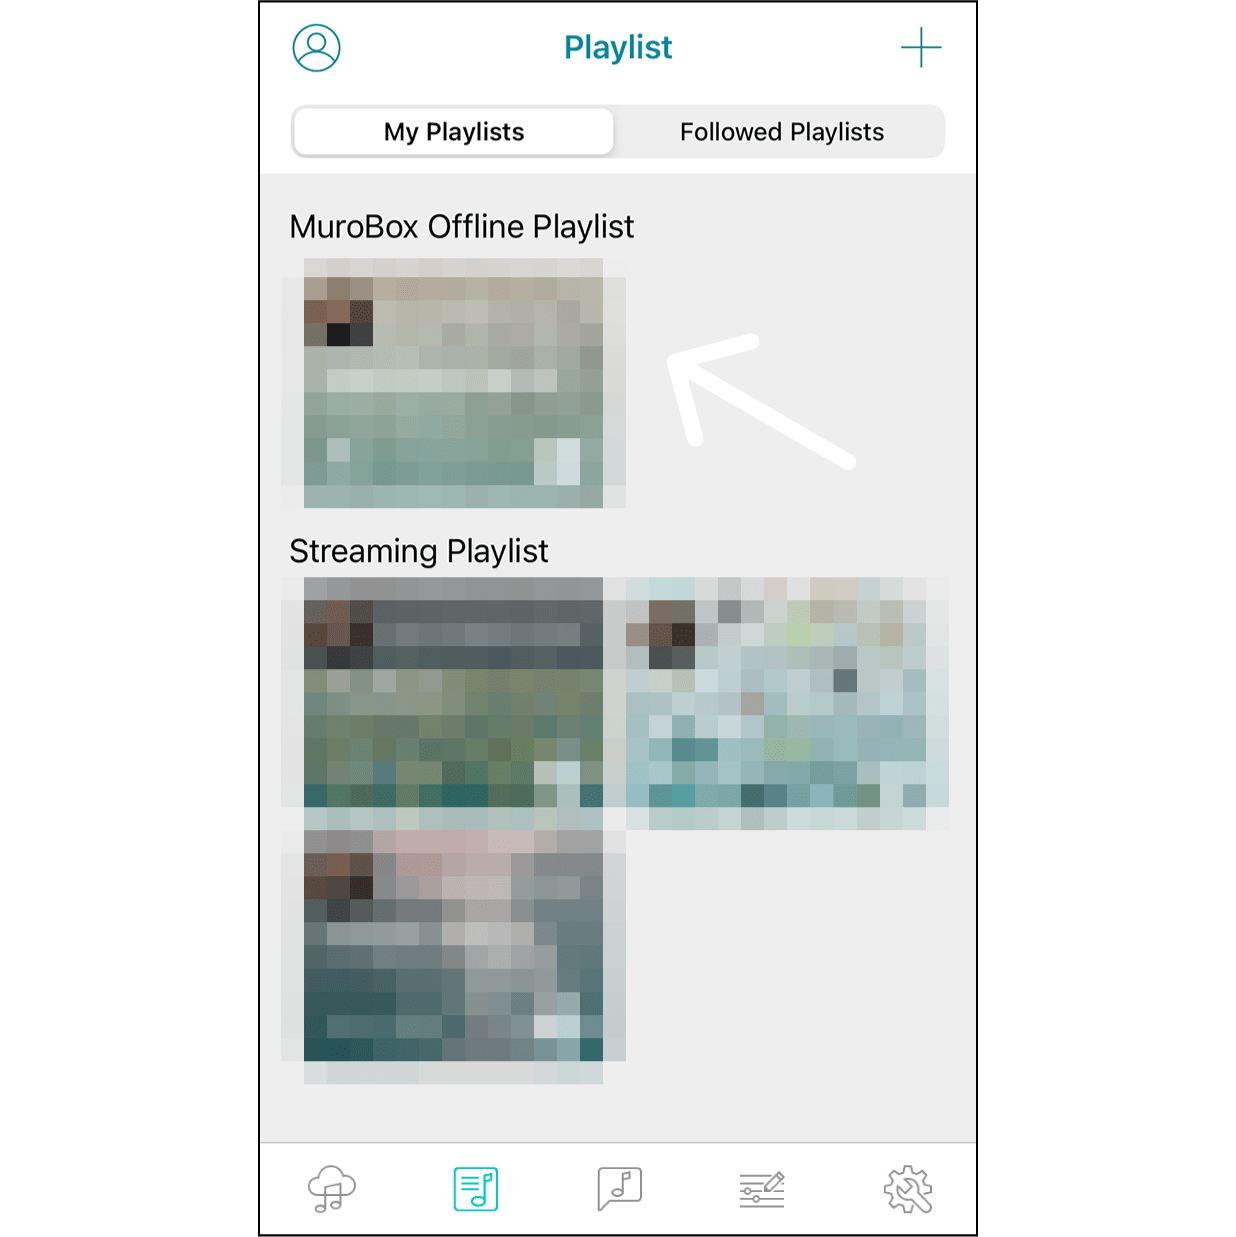 The Default Offline PlaylistThe Muro Box official provided a free playlist as your default offline playlist when the Muro Box is shipped to you.